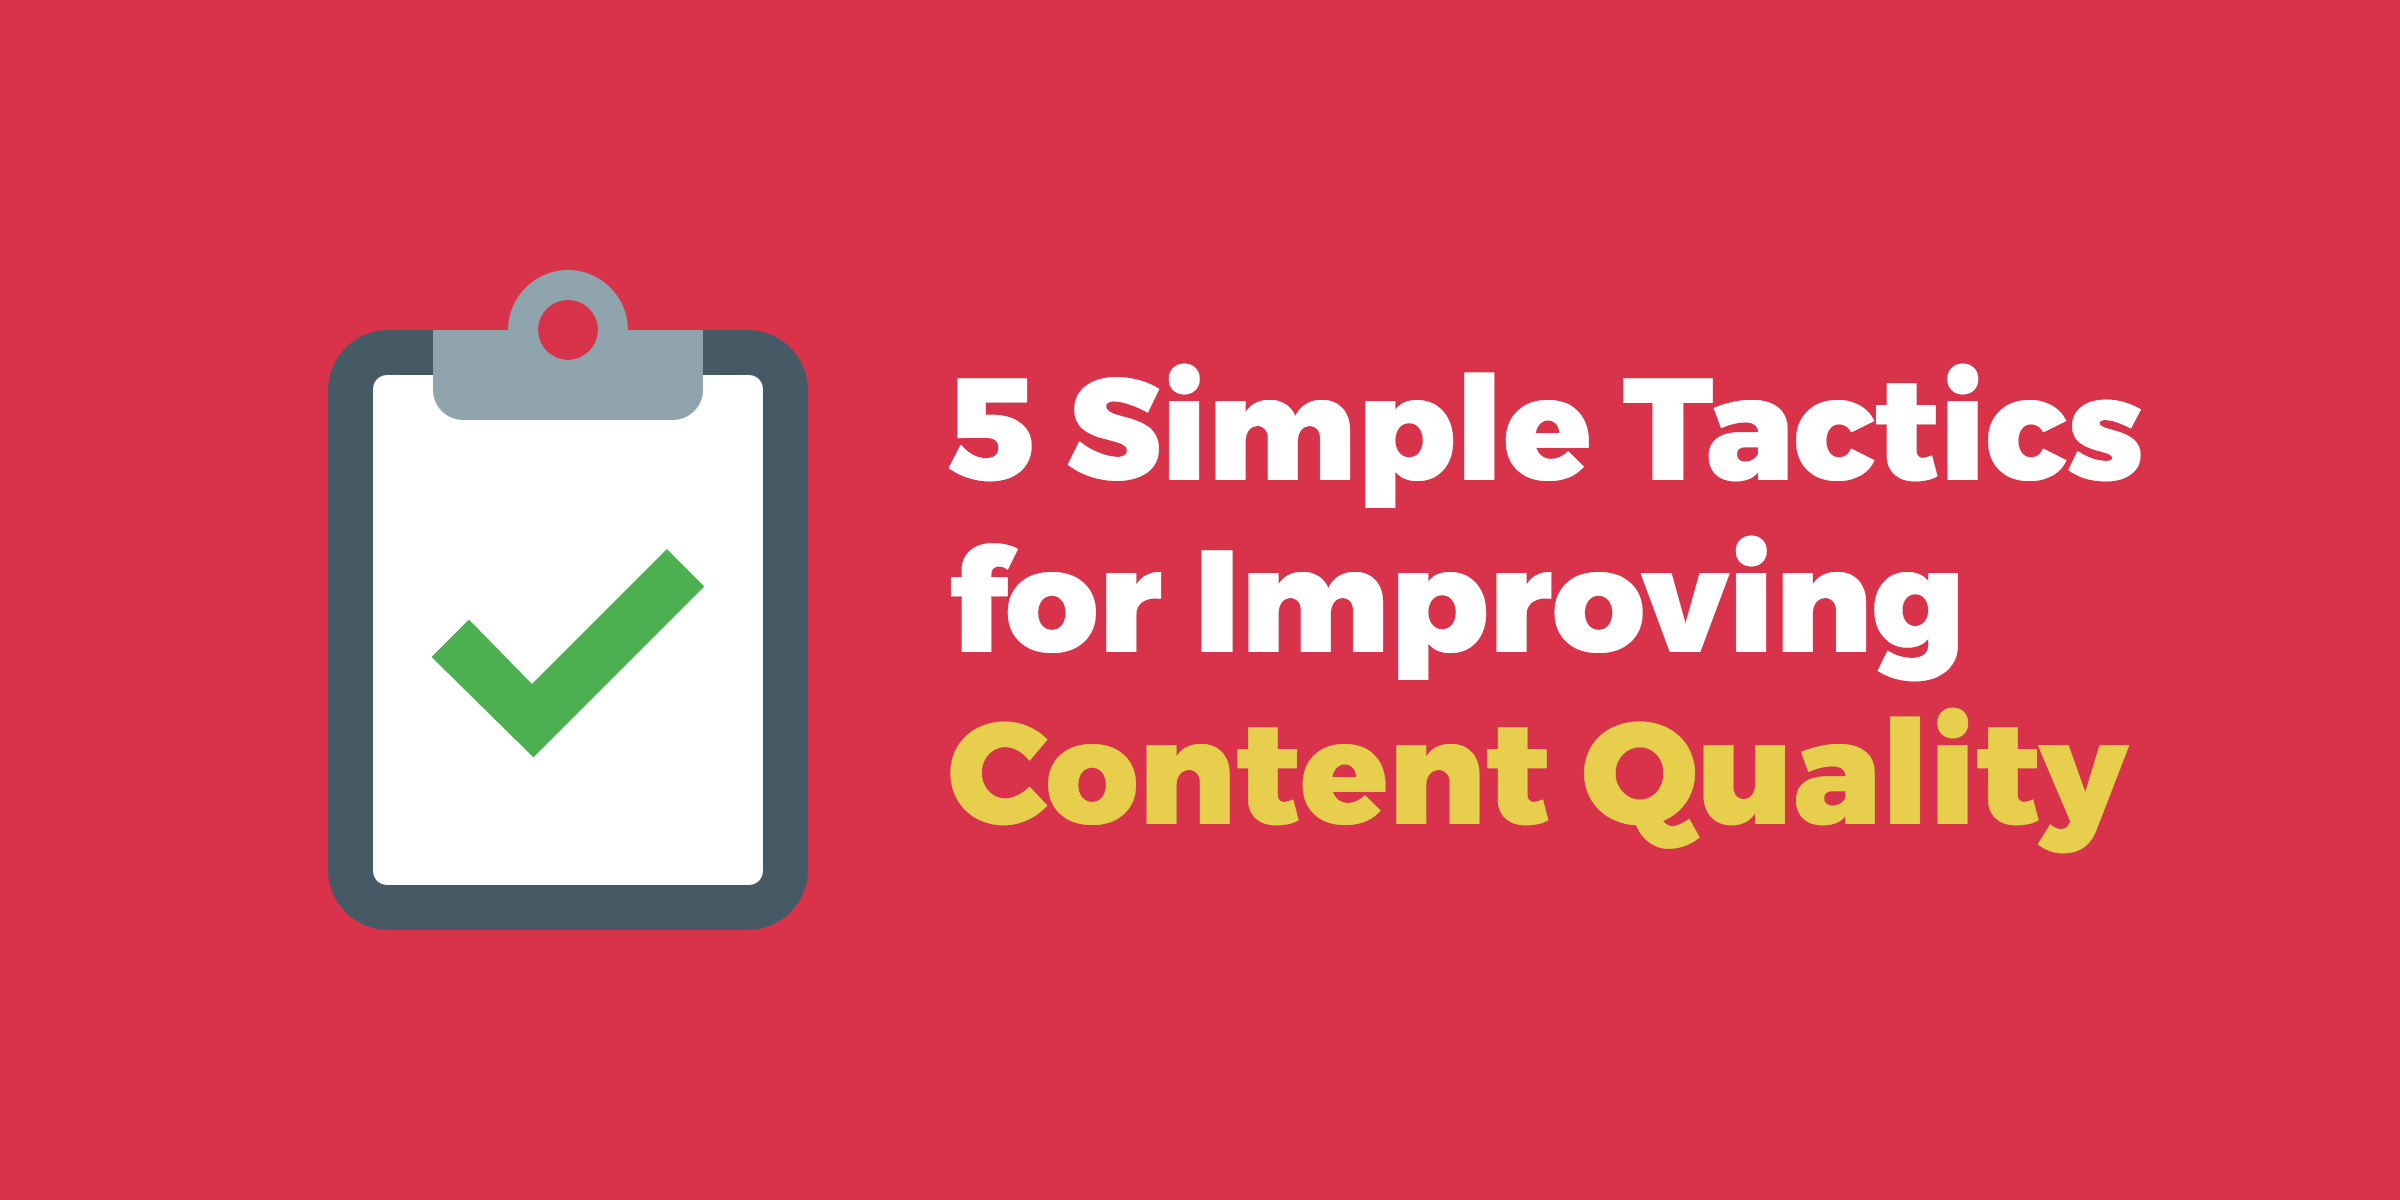 Improving content quality